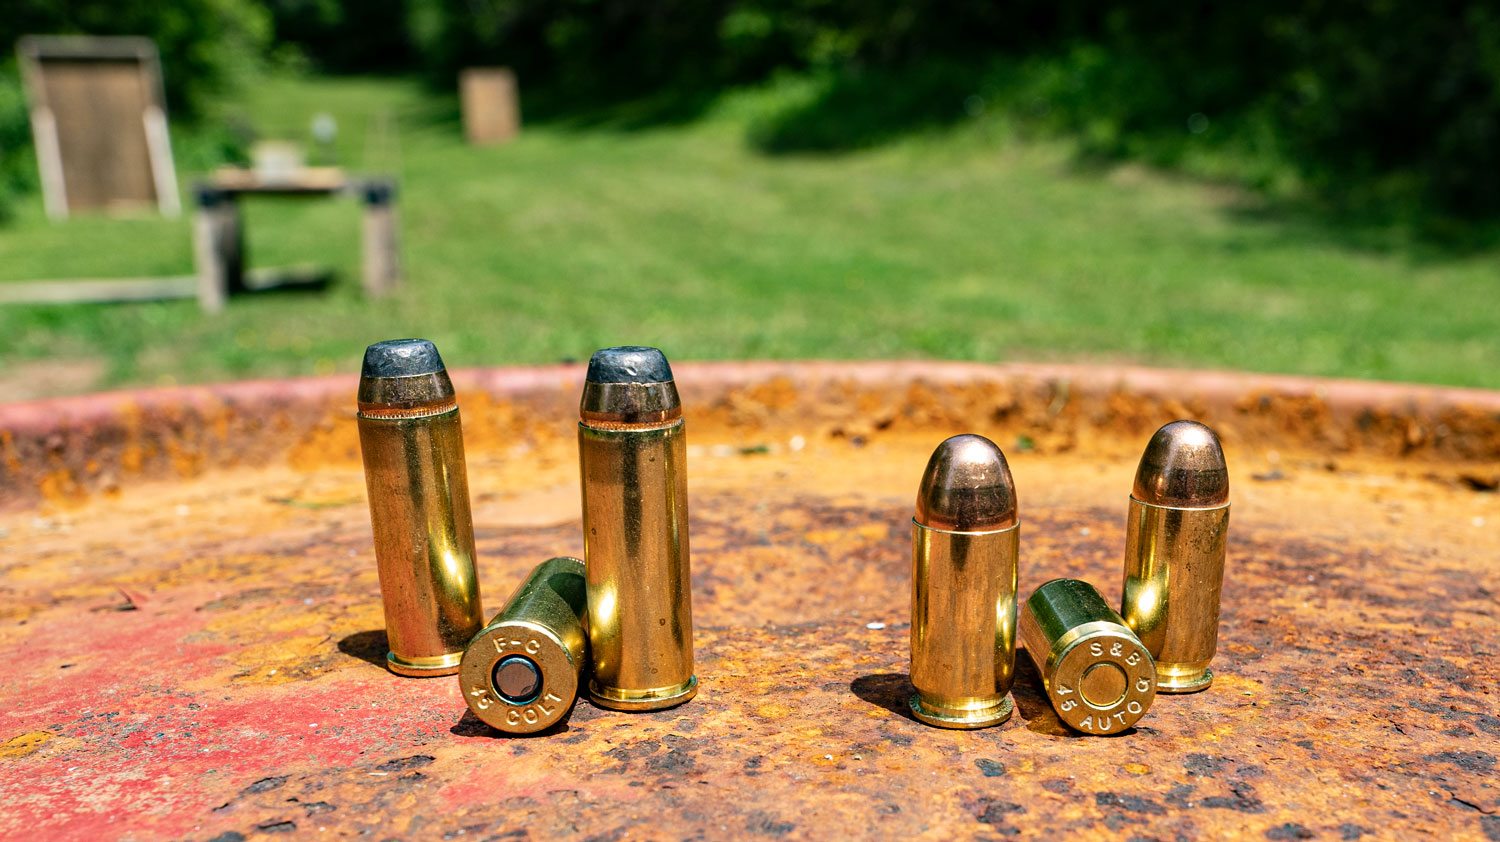 45 LC and 45 ACP ammo side by side